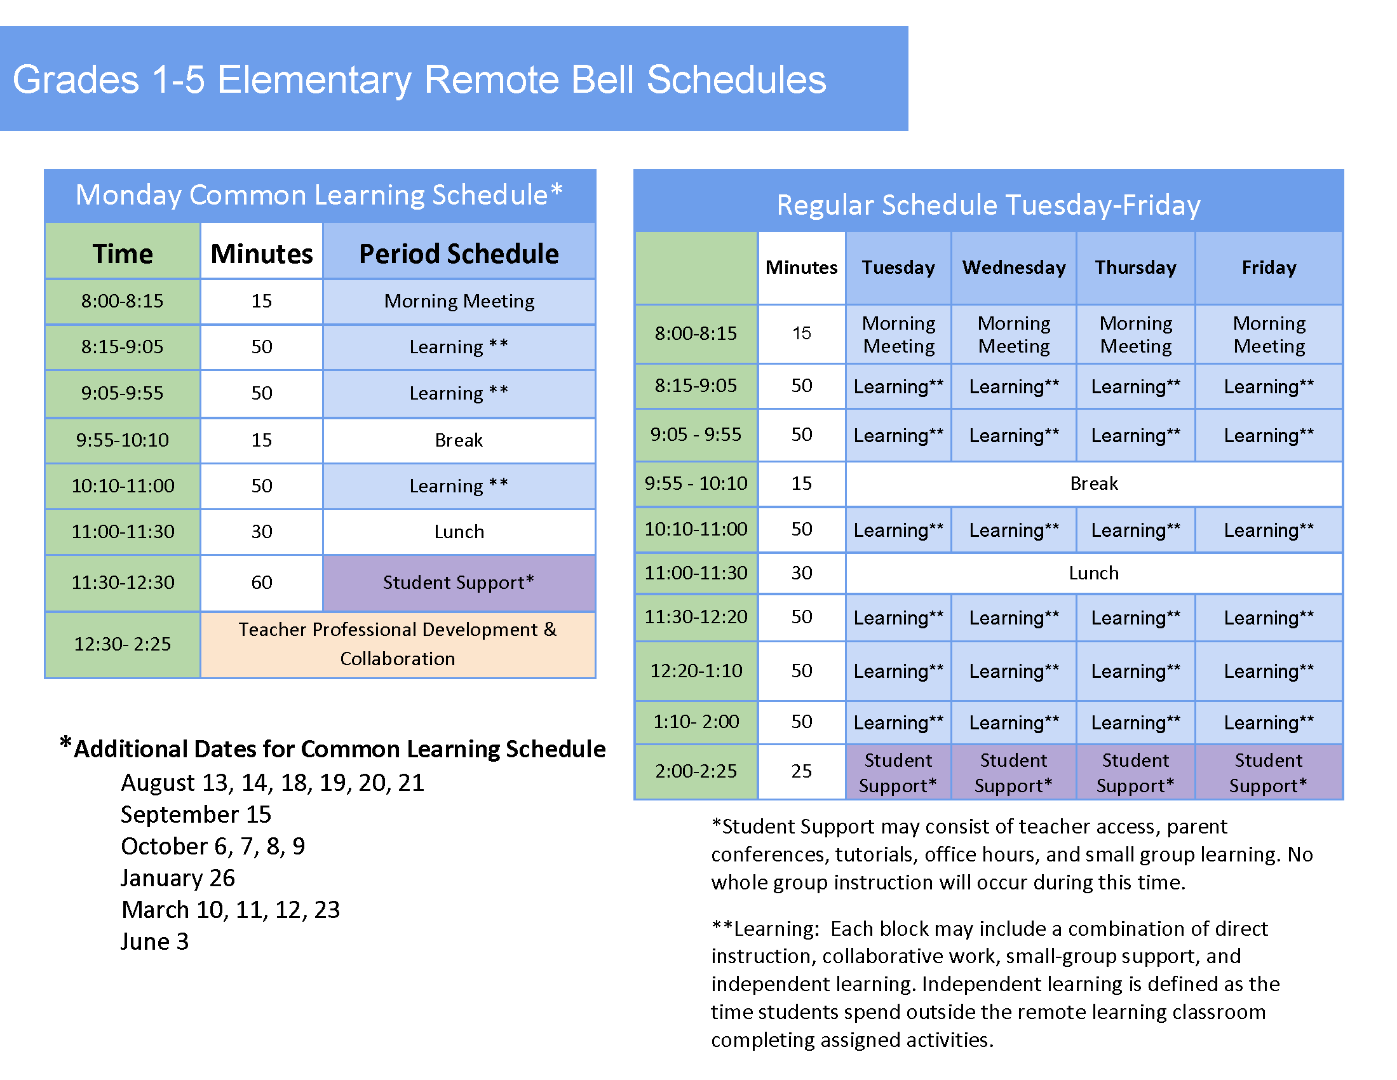 Grades 1-5 Elementary Remote Learning Schedule